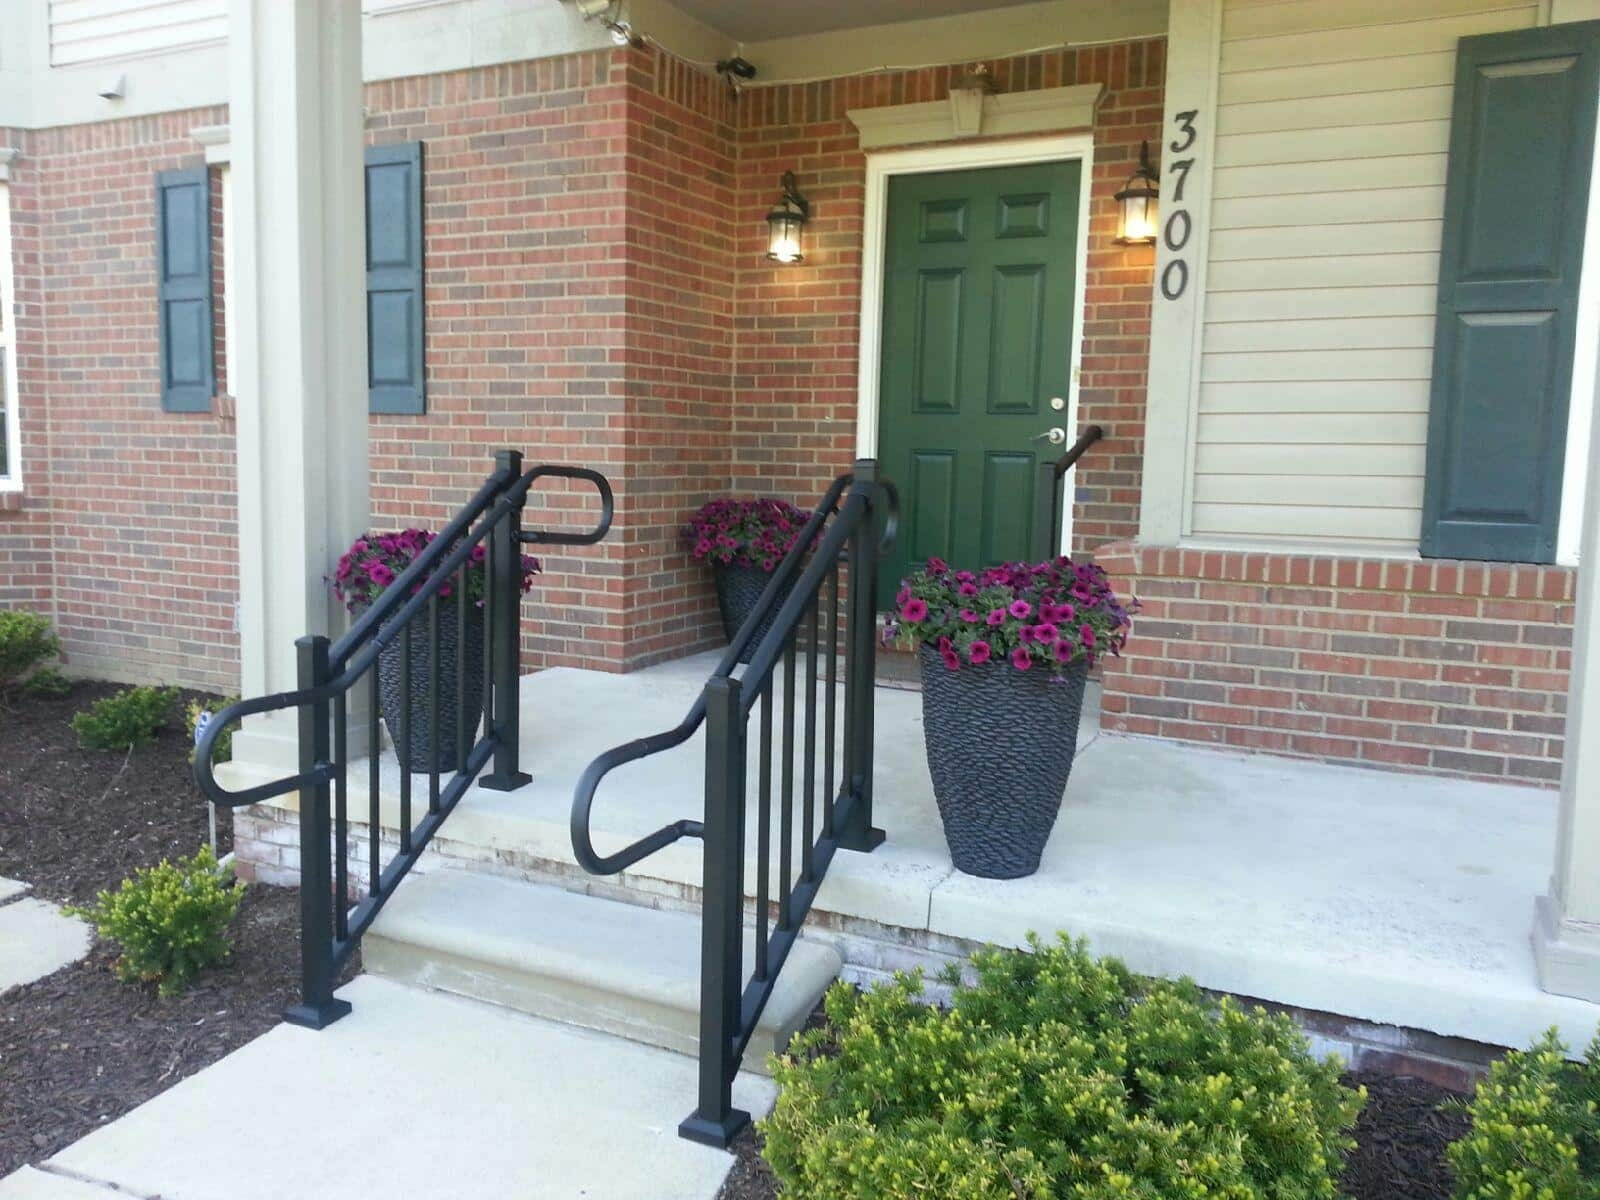 The Proper Handrail Height Aluminum Handrail Direct | Handrails For Outside Steps | Single Step | Rustic | Aluminum | Front Porch | Walkway